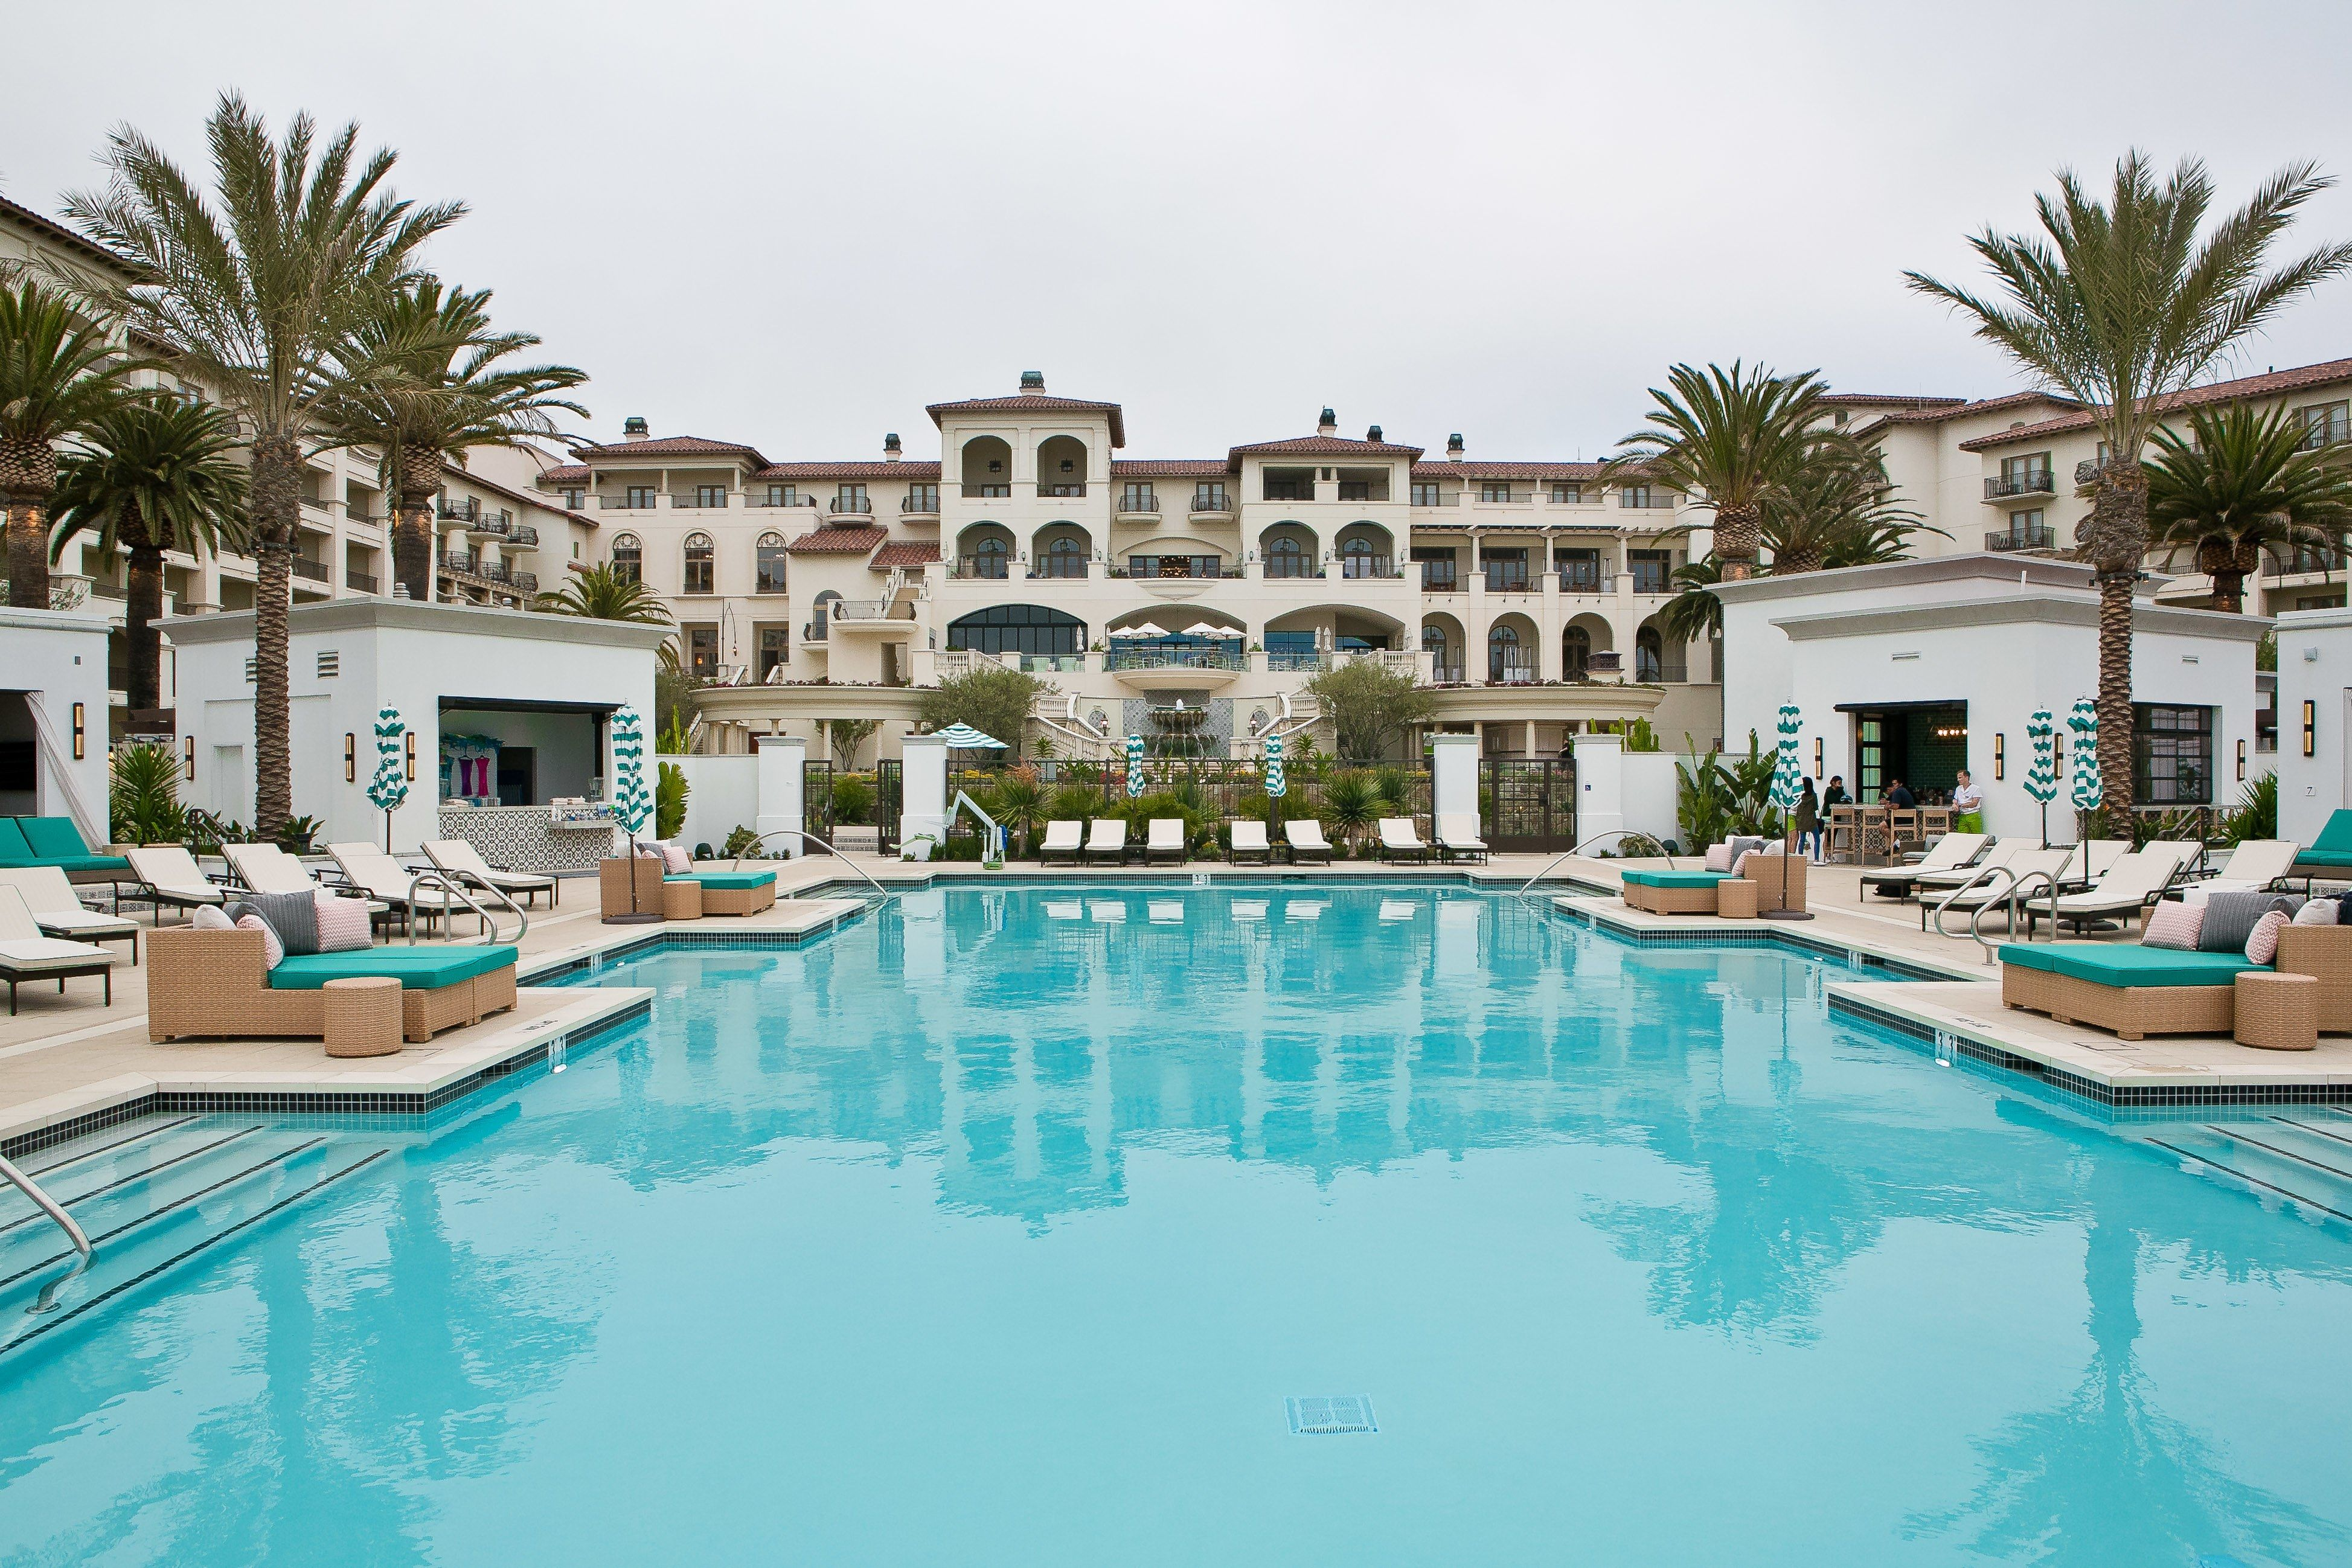 10 Beautiful Pacific Coast Highway Hotels For Your California Road Trip Architectural Digest